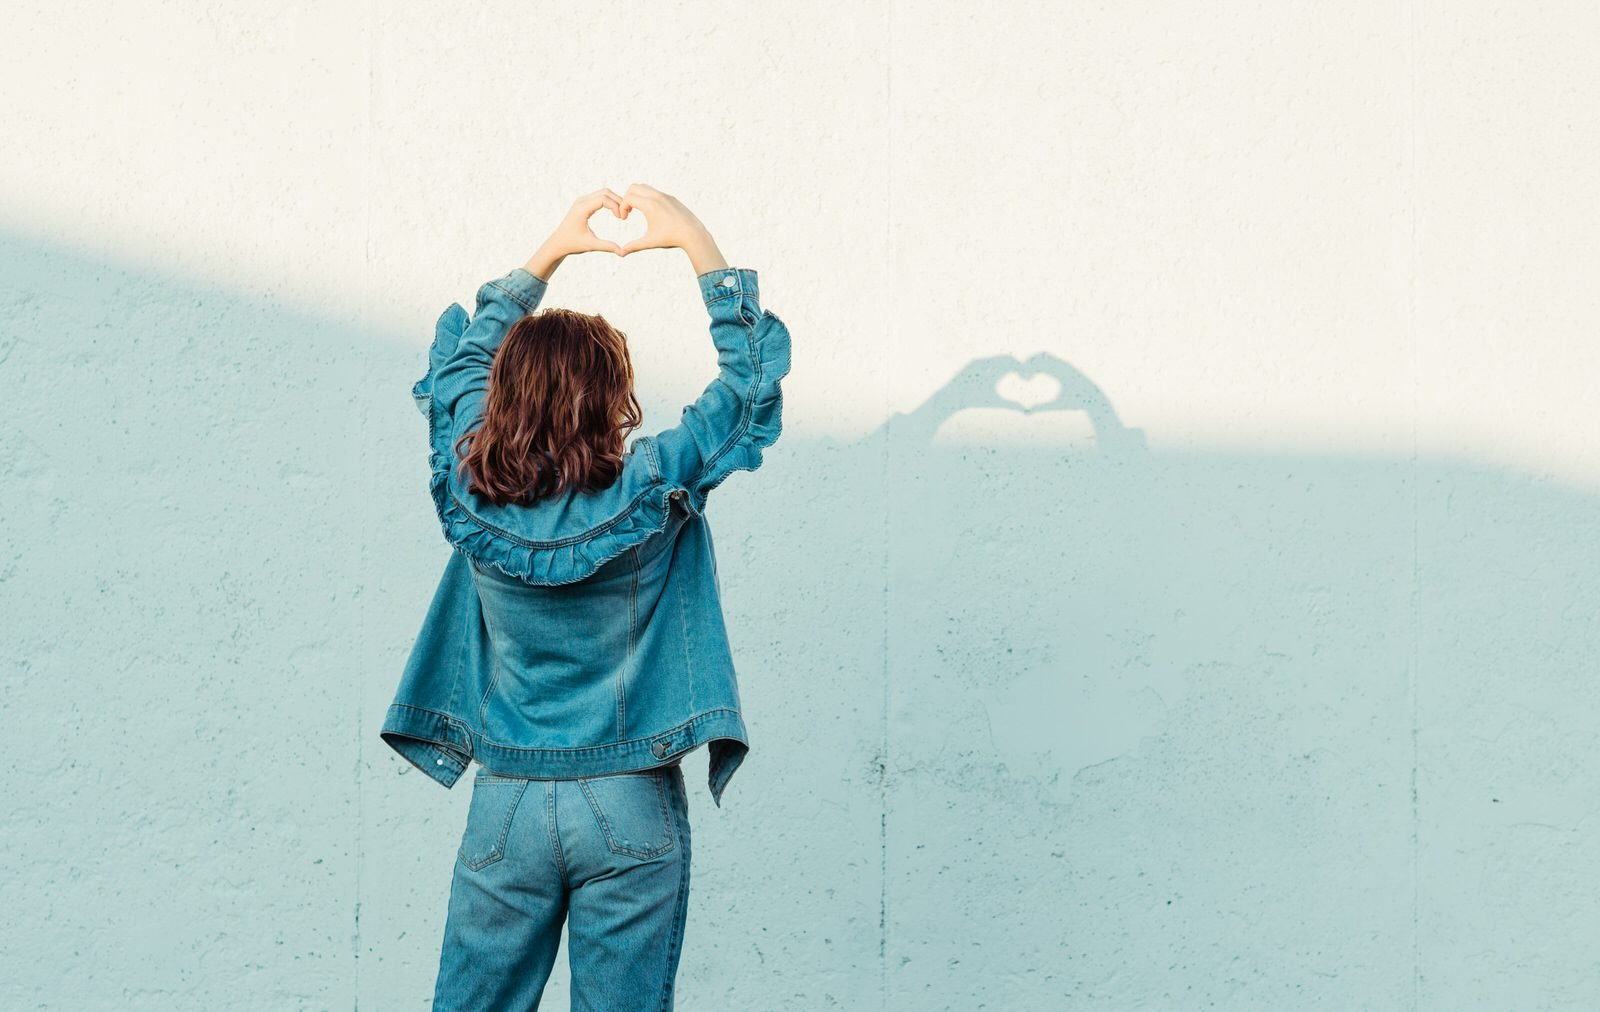 woman in jeans and jean jacket uses her hands to make a heart shaped shadow against shadowed white walls